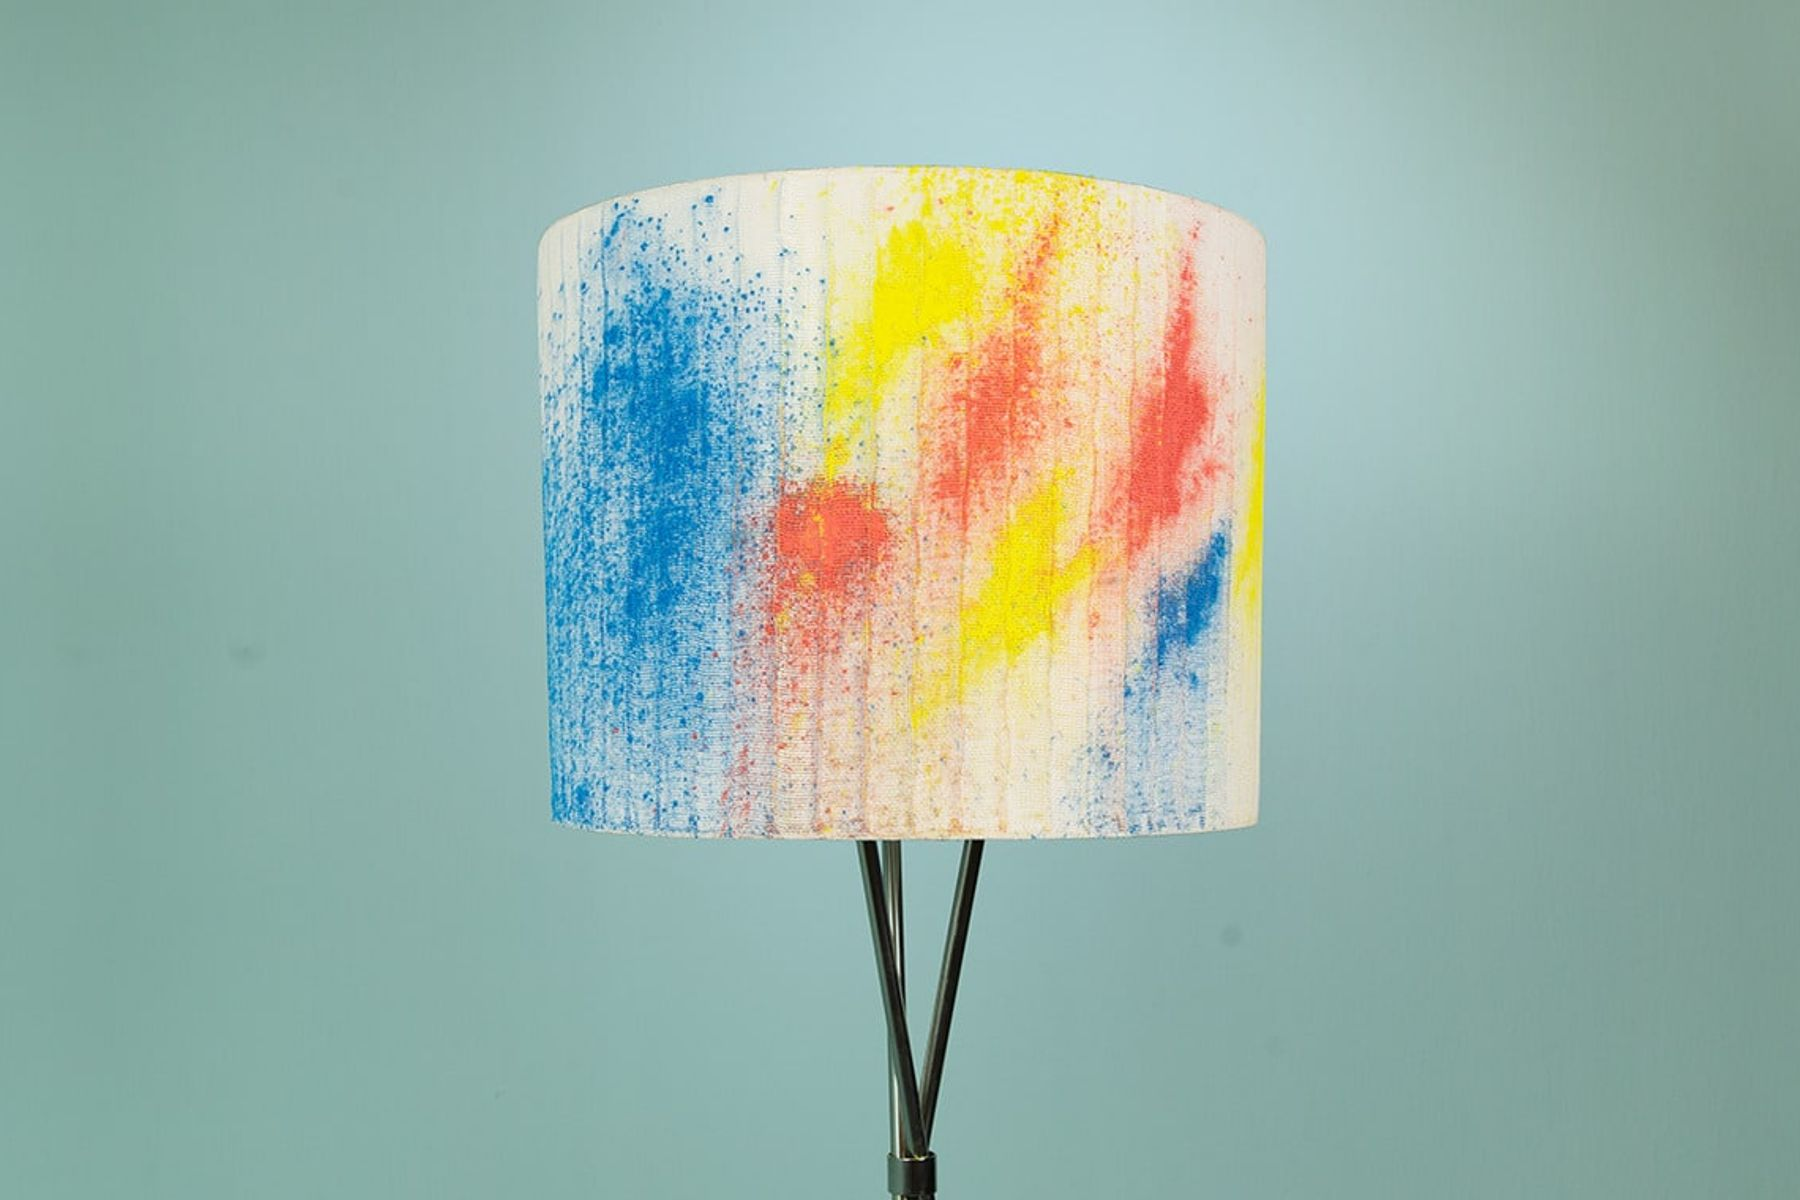 How To Make A Lampshade From Scratch Cleanipedia